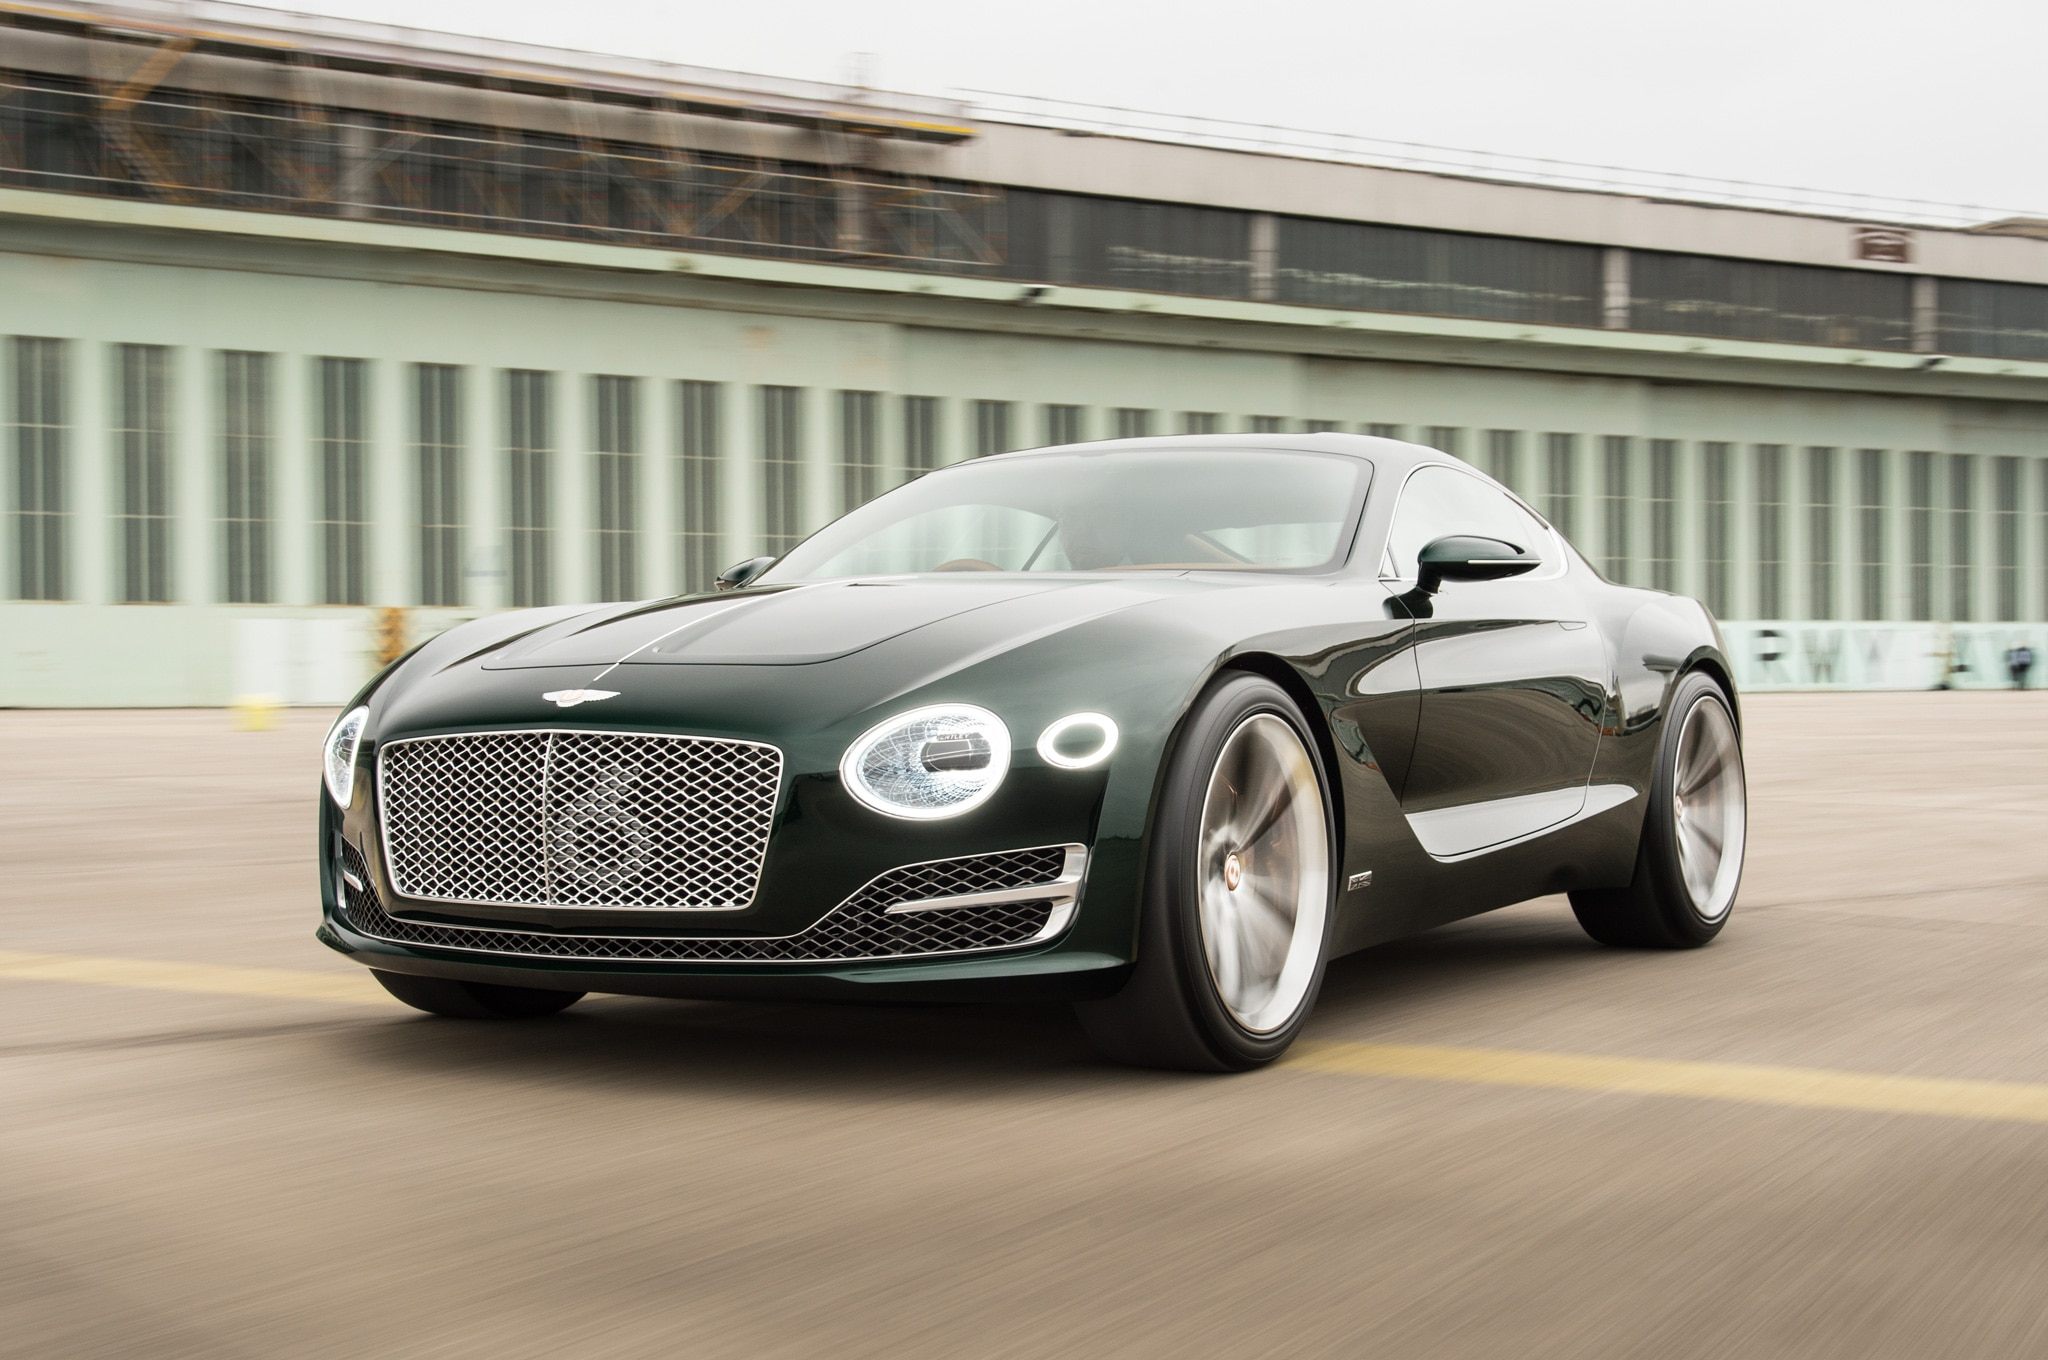 By Design: Bentley EXP 10 Speed 6 Concept | Automobile Magazine